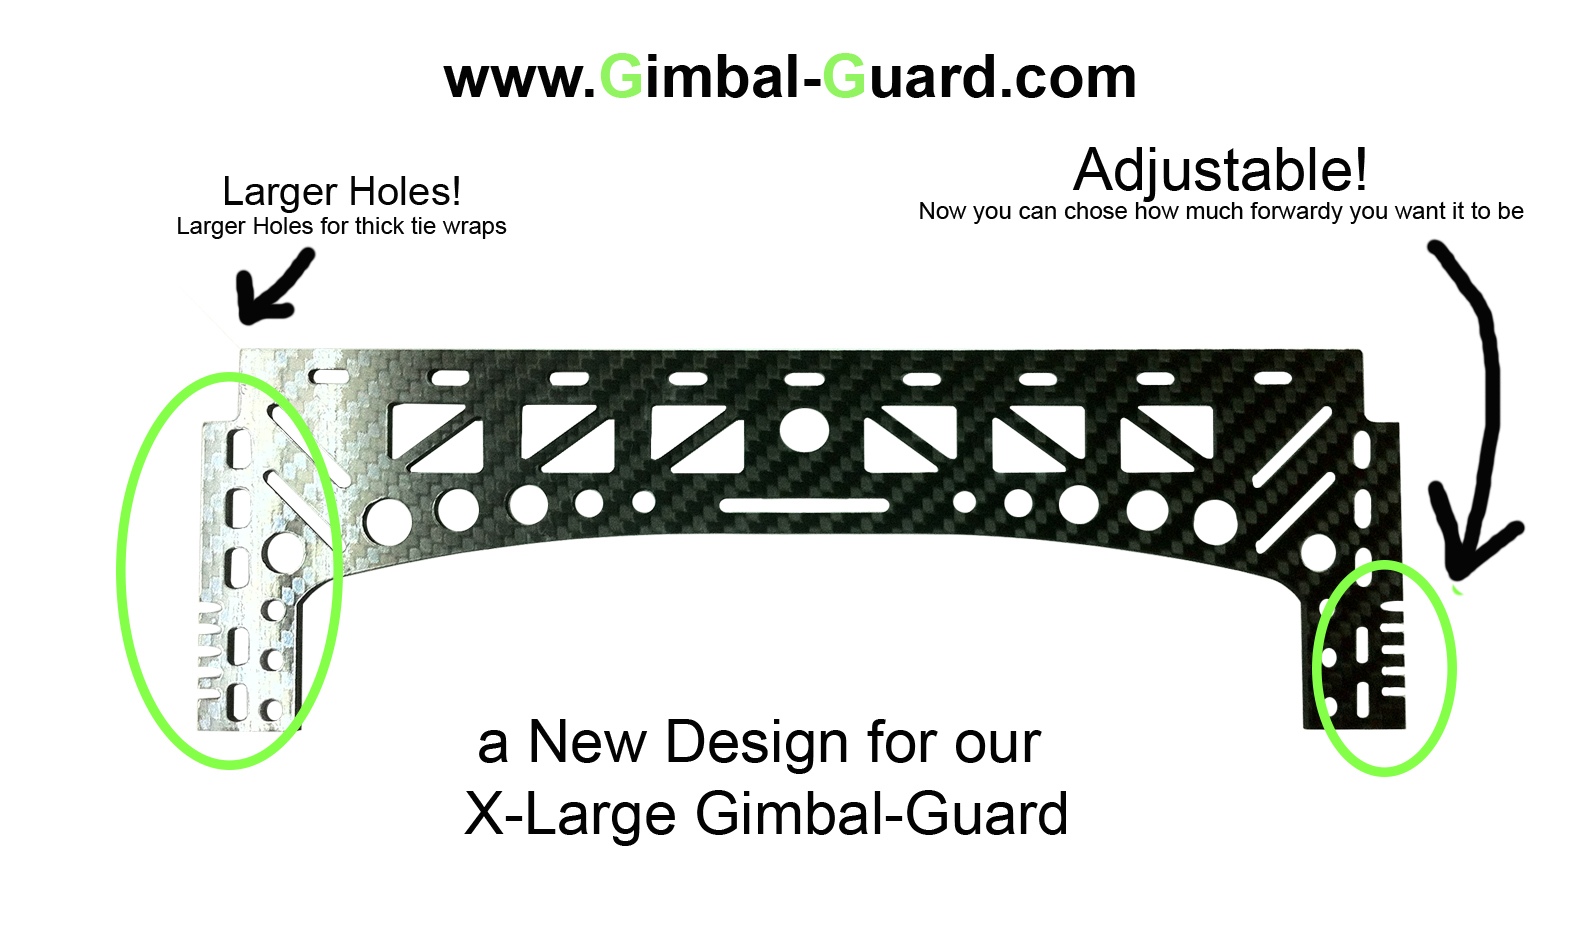 X-Large_Gimbal-Guard_New_design.jpg